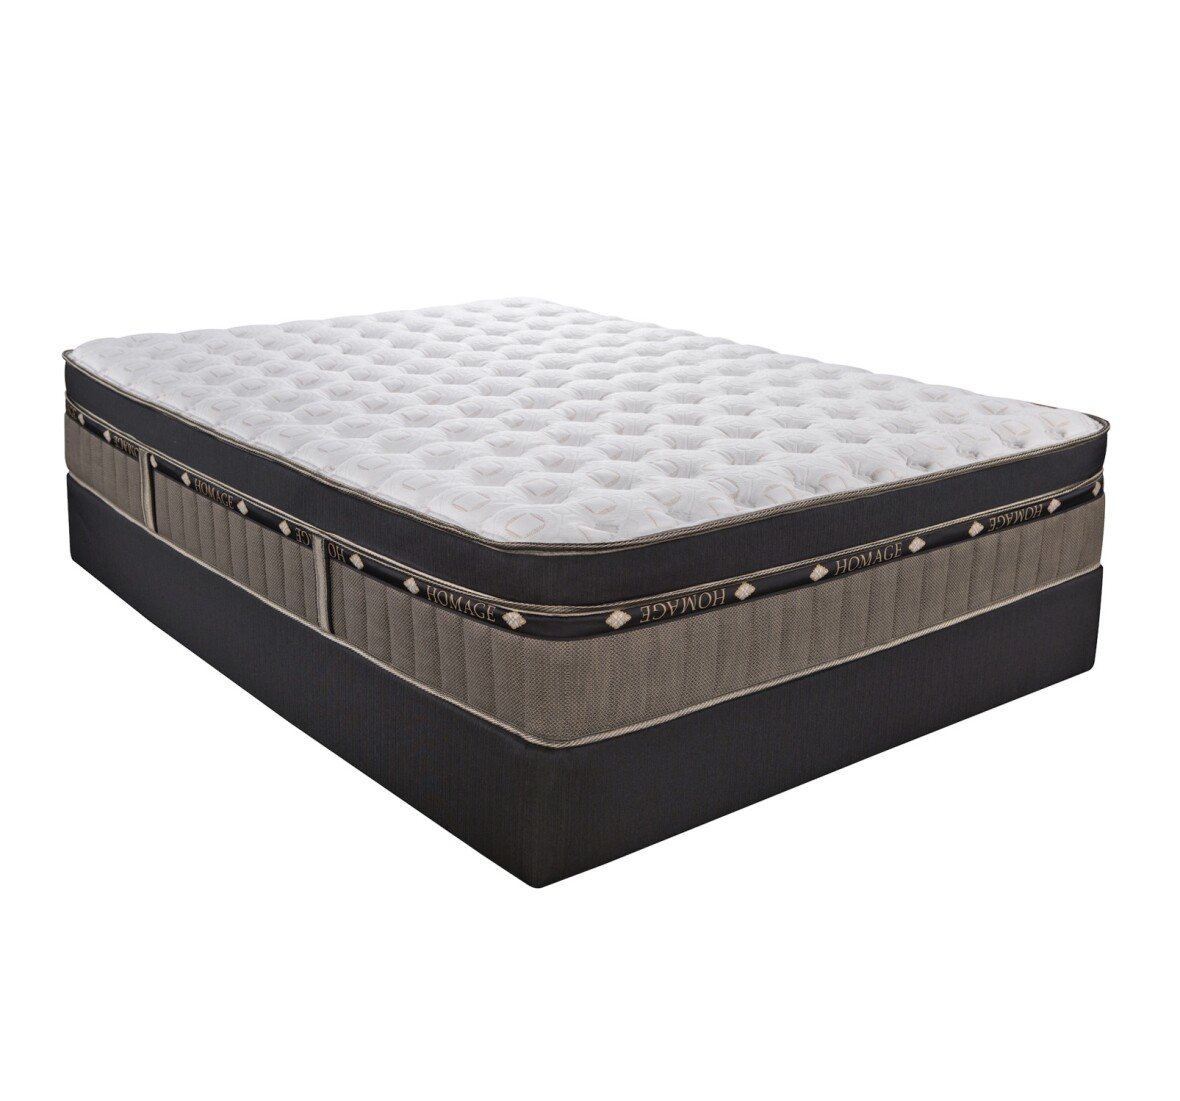 127149_Homage_Respect Plush Euro Top Mattress  (3).jpg